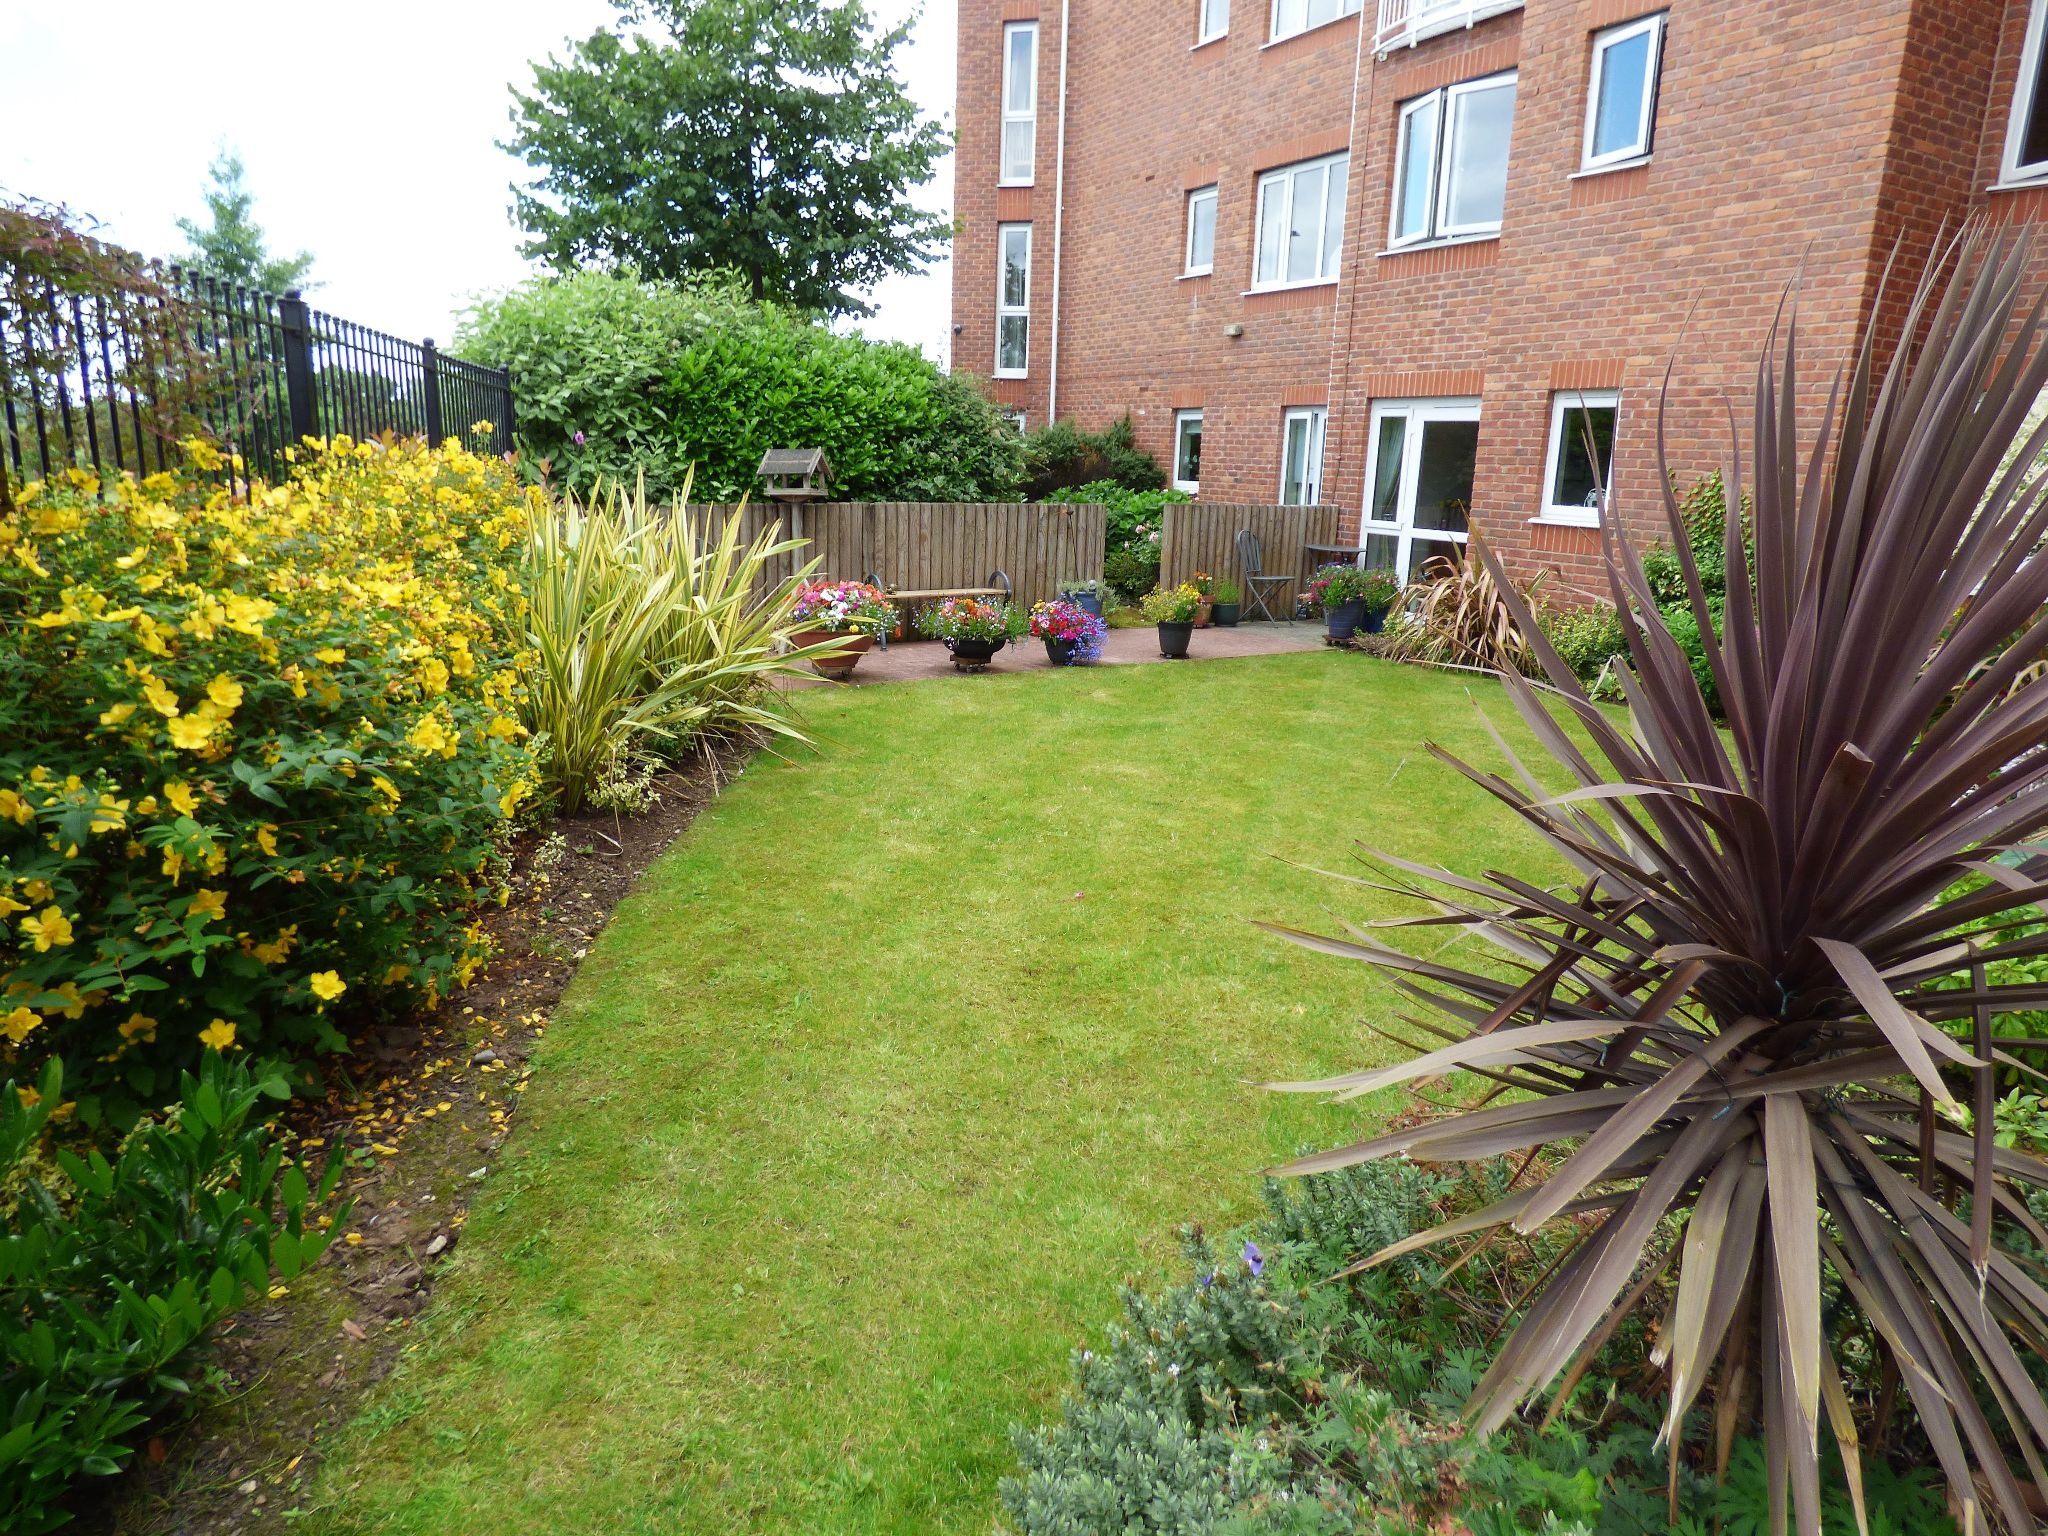 2 Bedroom Ground Floor Flat/apartment For Sale - Photograph 11